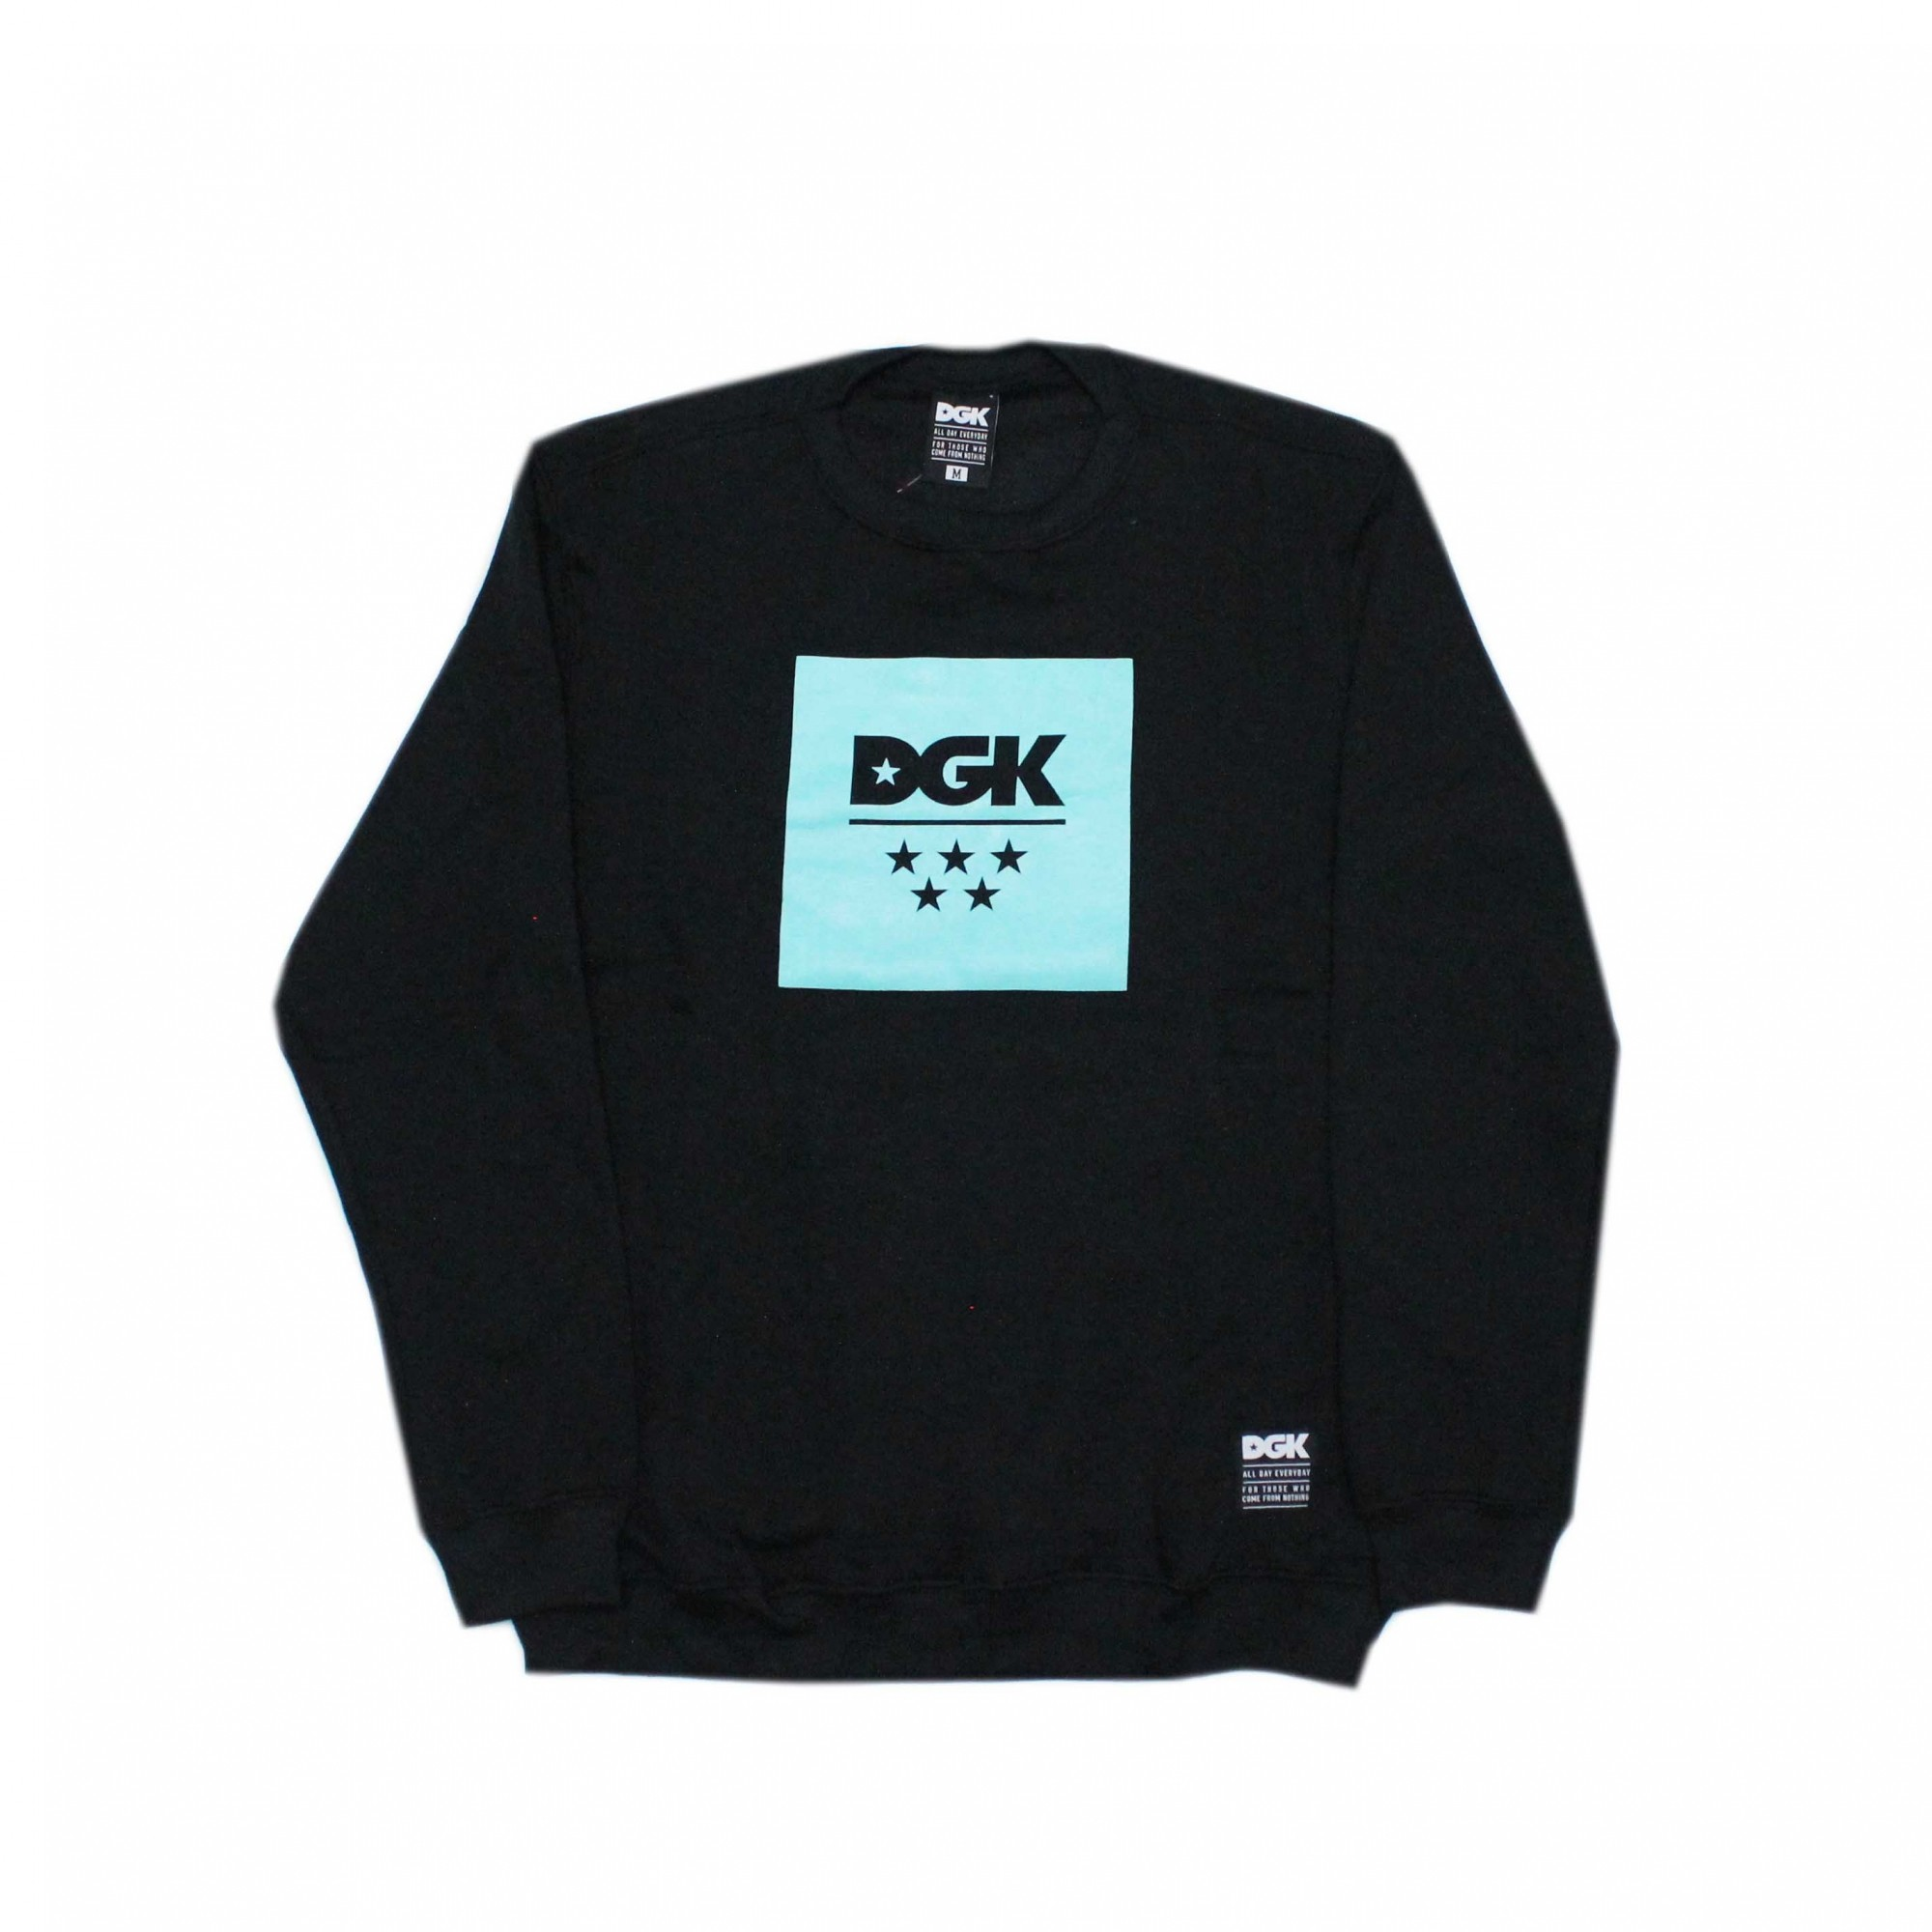 Moletom DGK Careca All Star Fleece - Preto